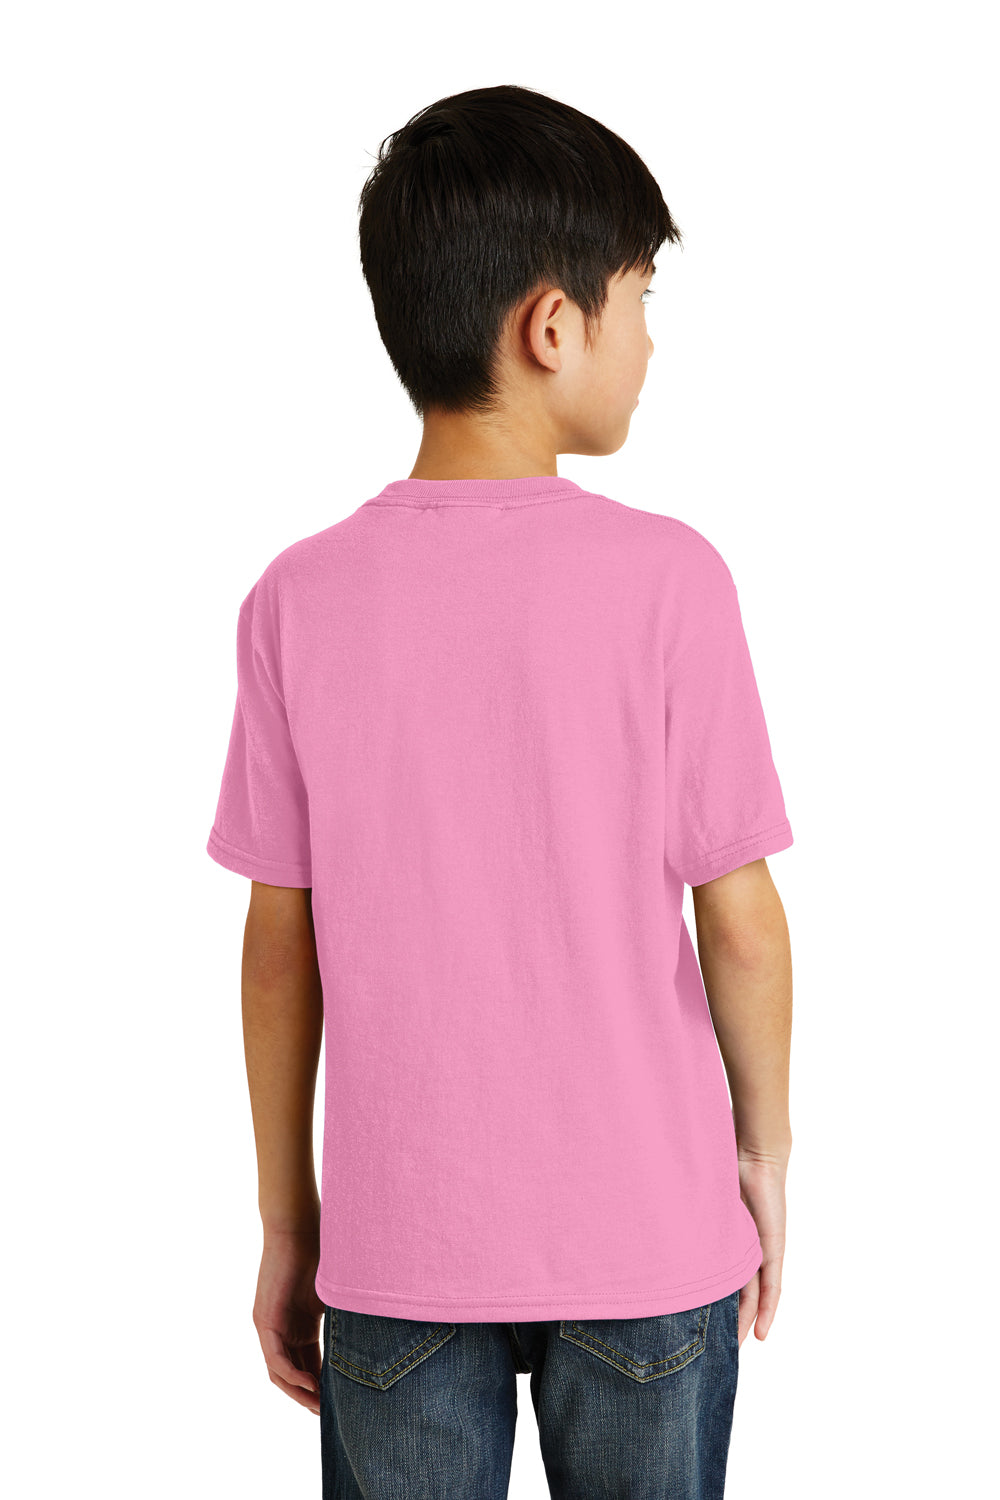 Port & Company PC55Y Youth Core Short Sleeve Crewneck T-Shirt Candy Pink Back